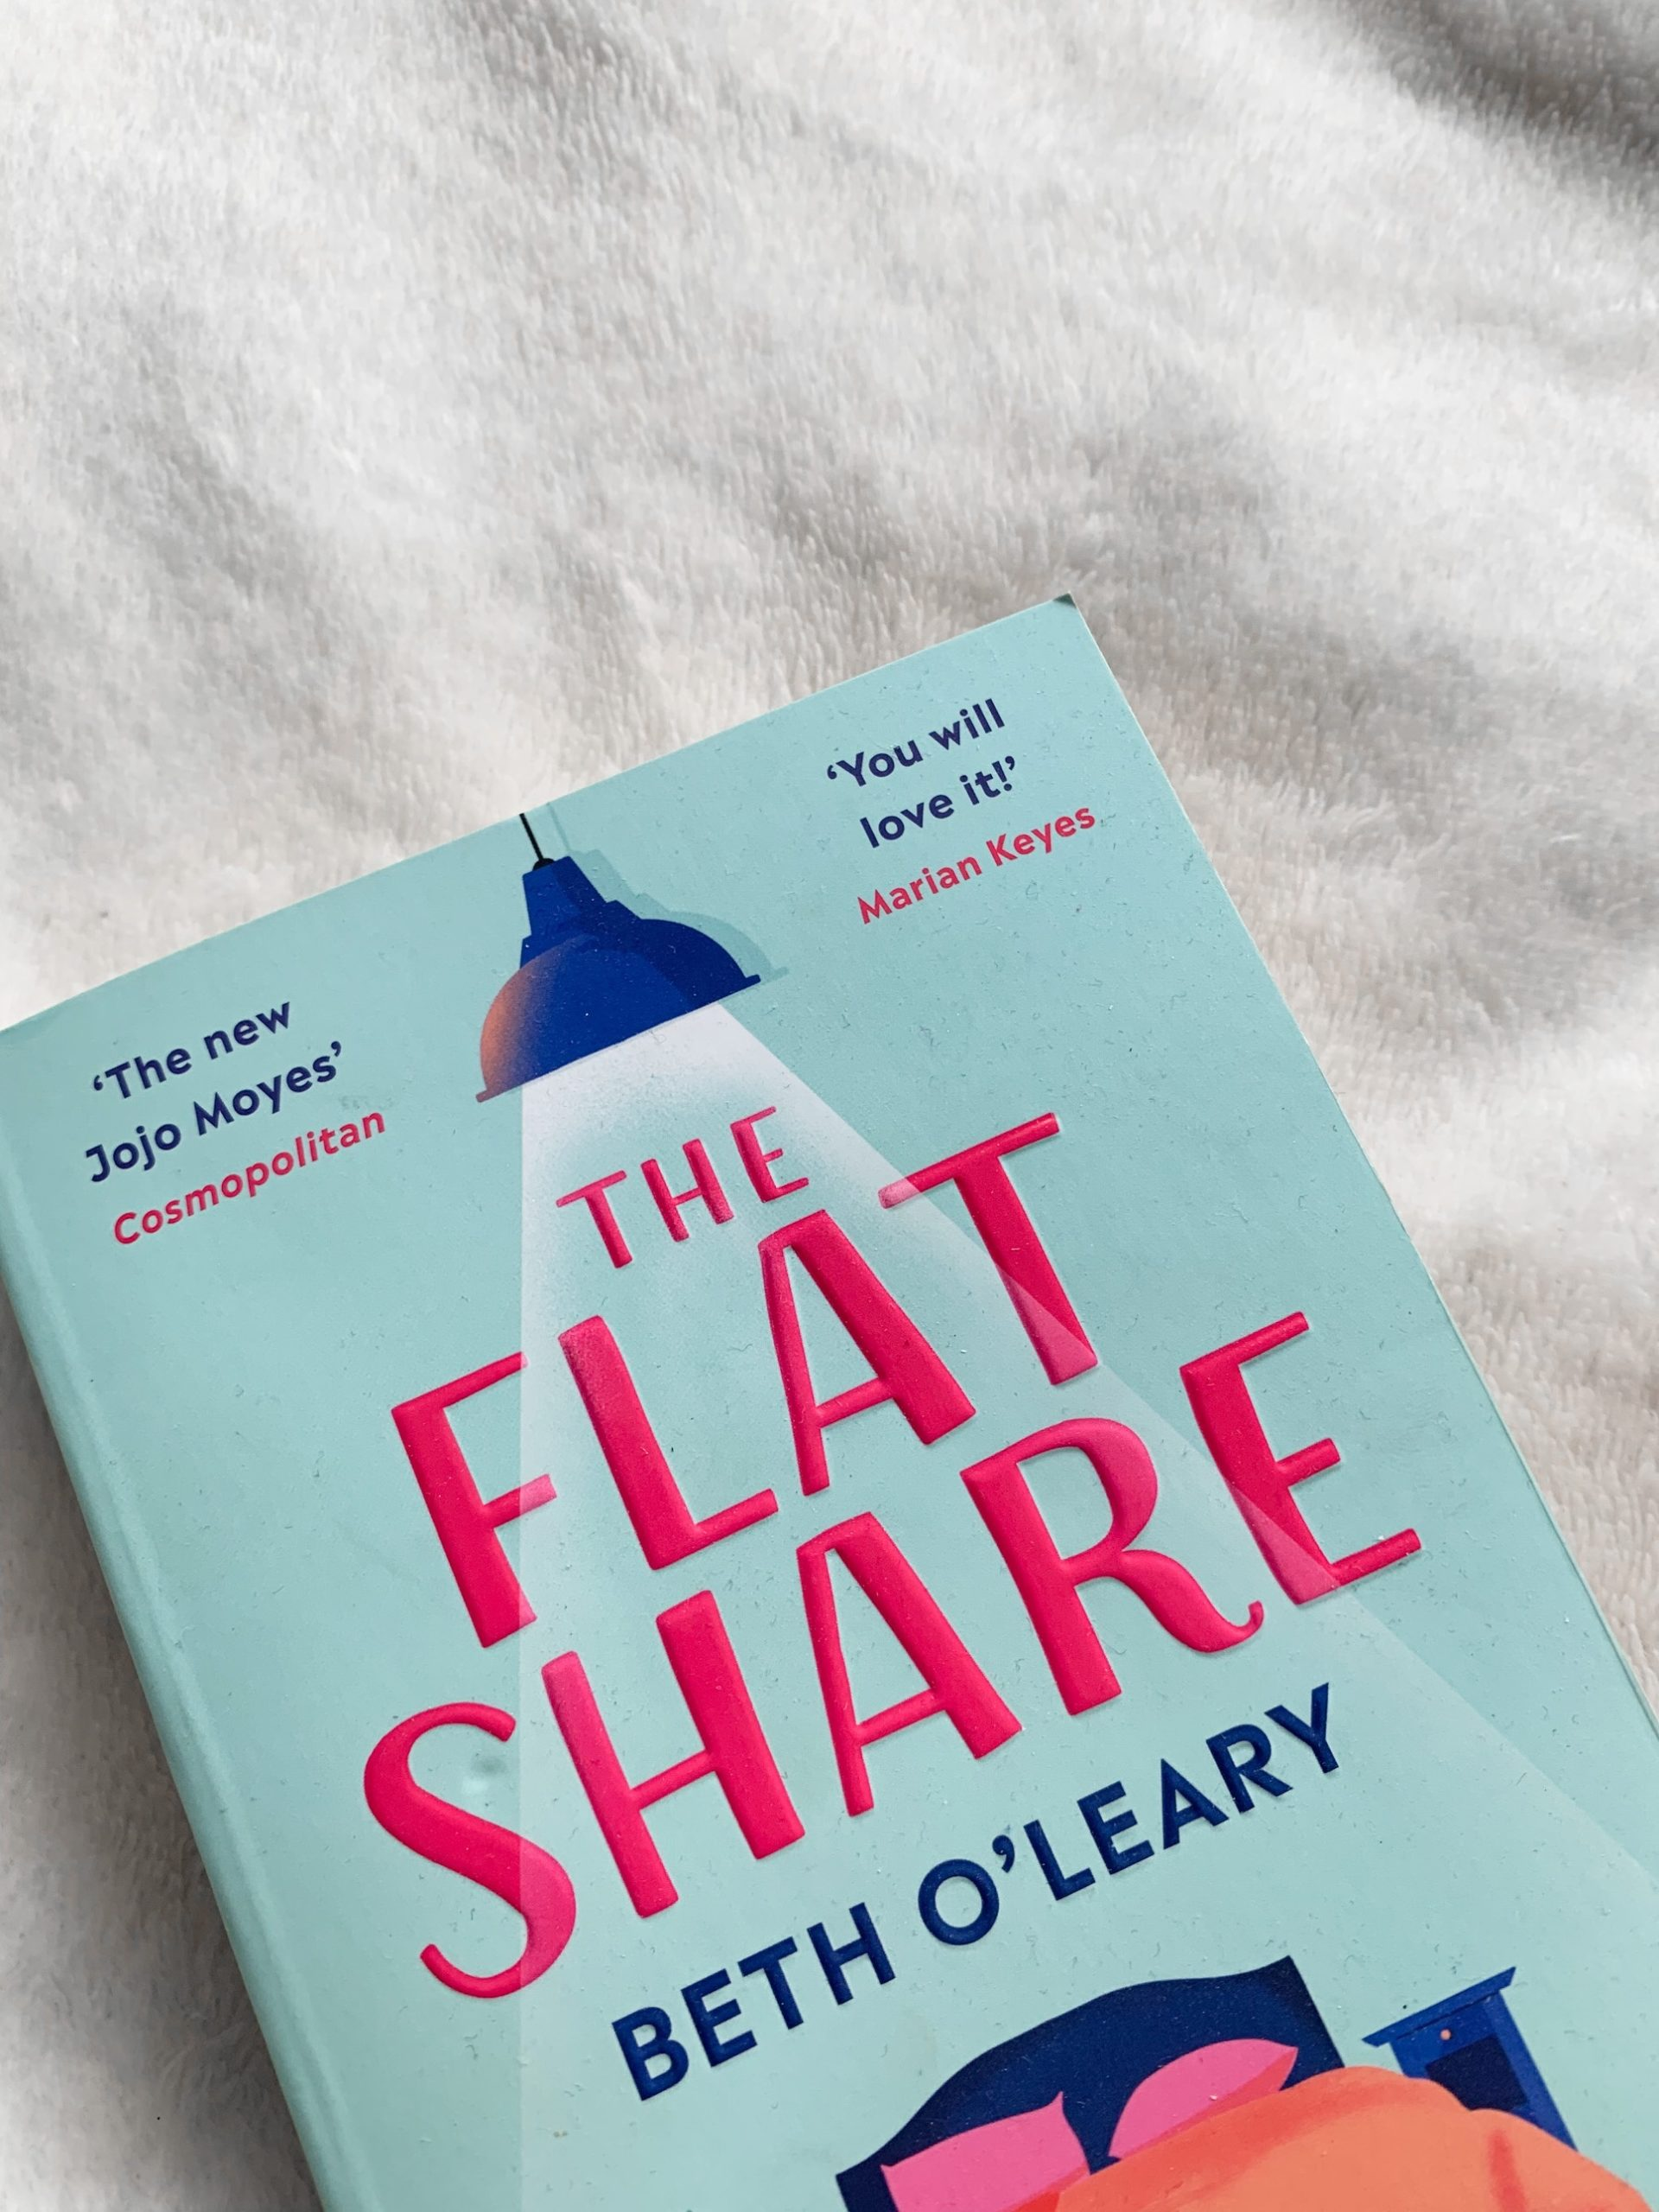 The Flat Share by Beth O'Leary on a white, soft blanket